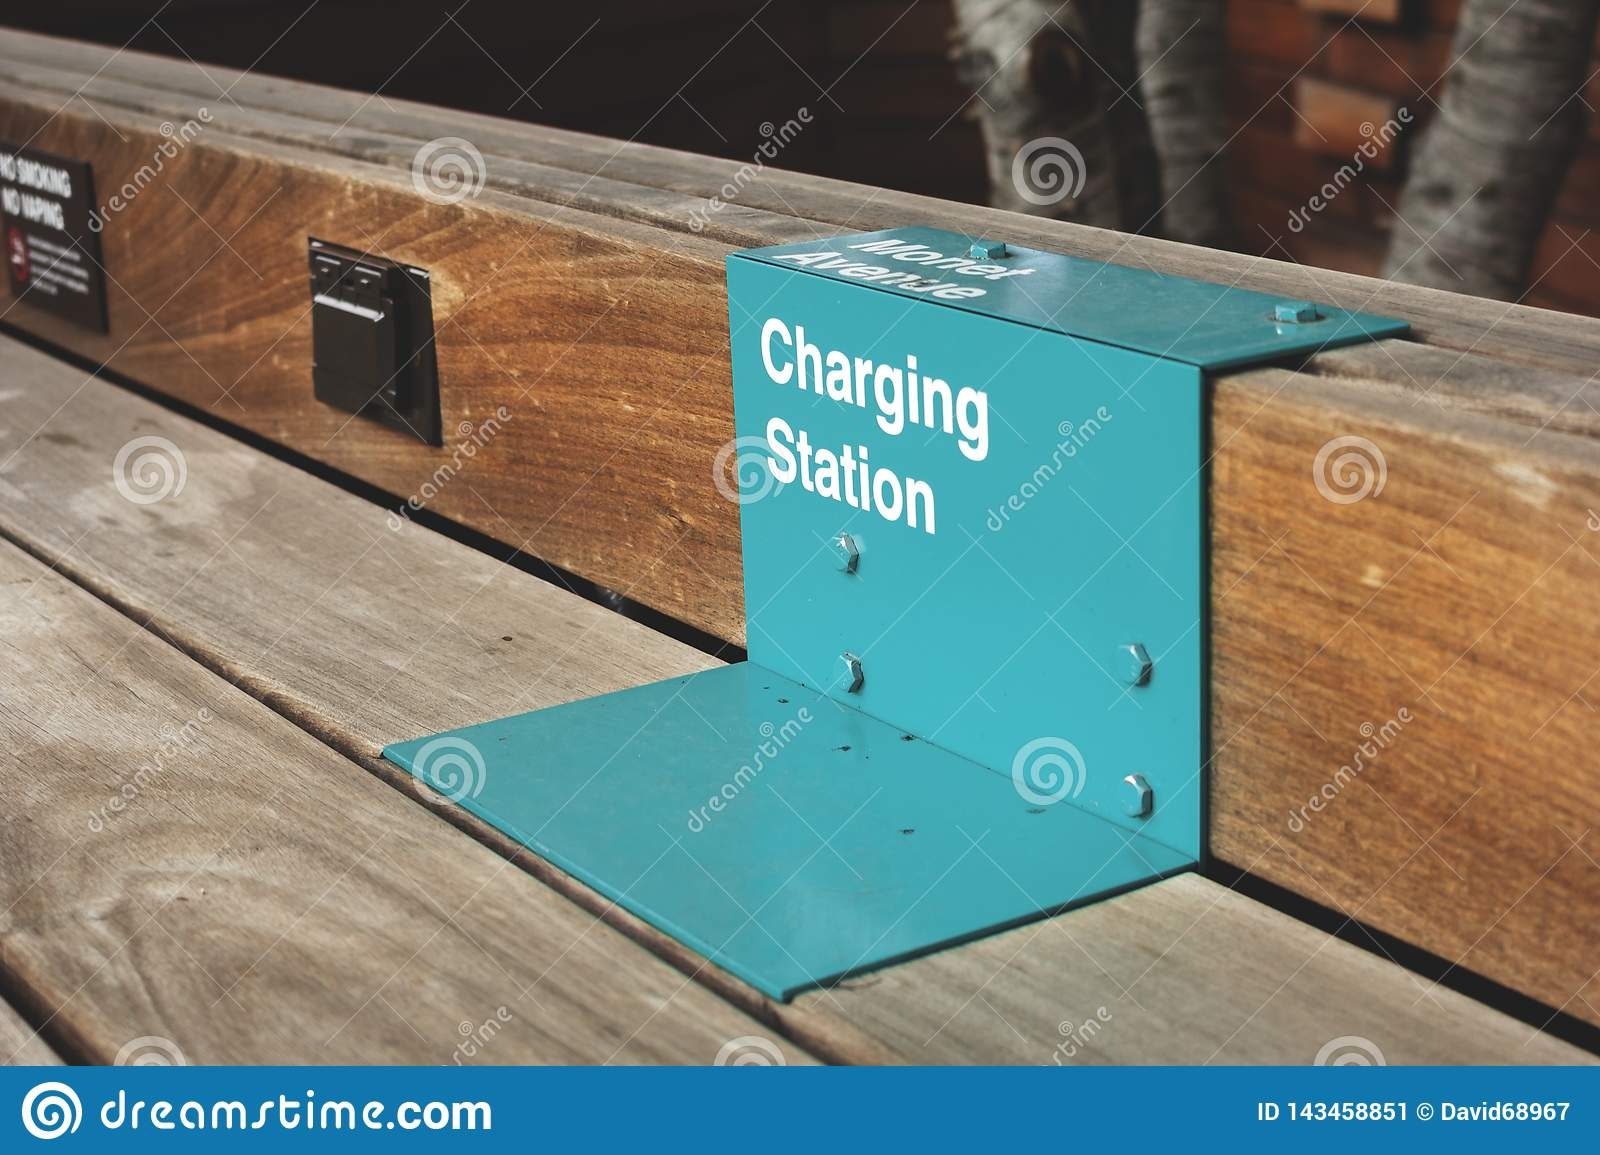 Charging station for cell phones